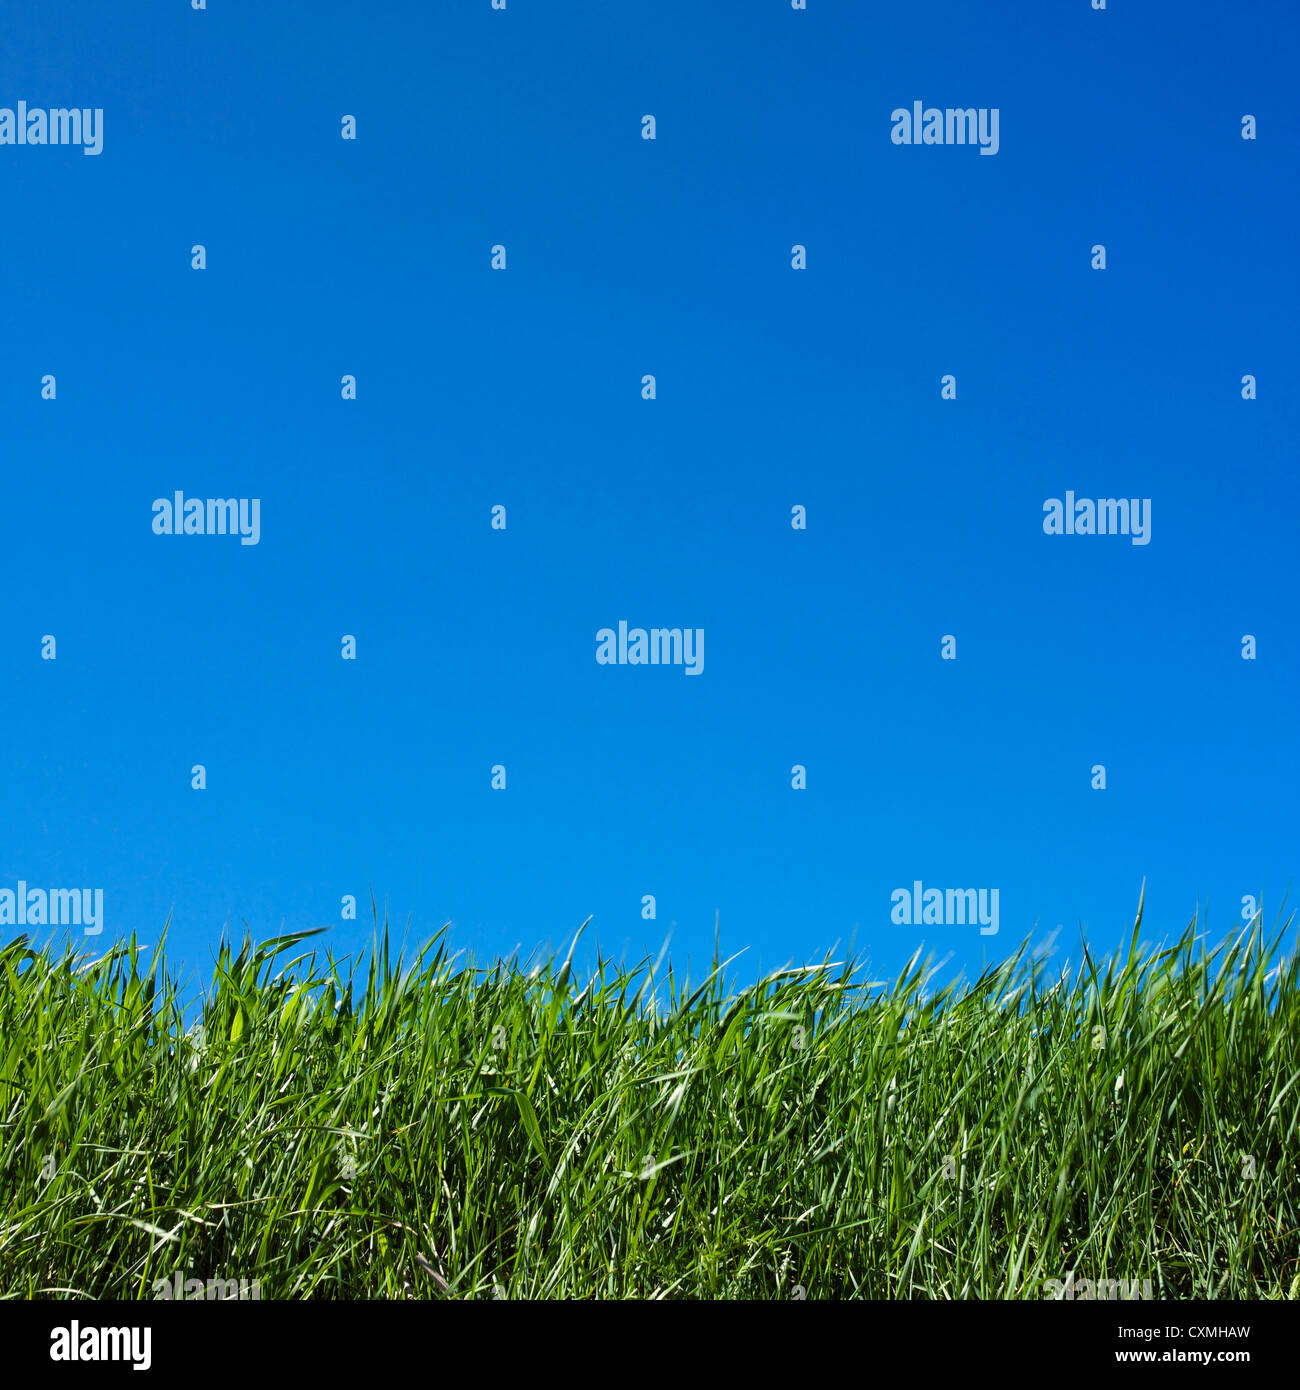 Grass close up and blue sky background - Stock Image